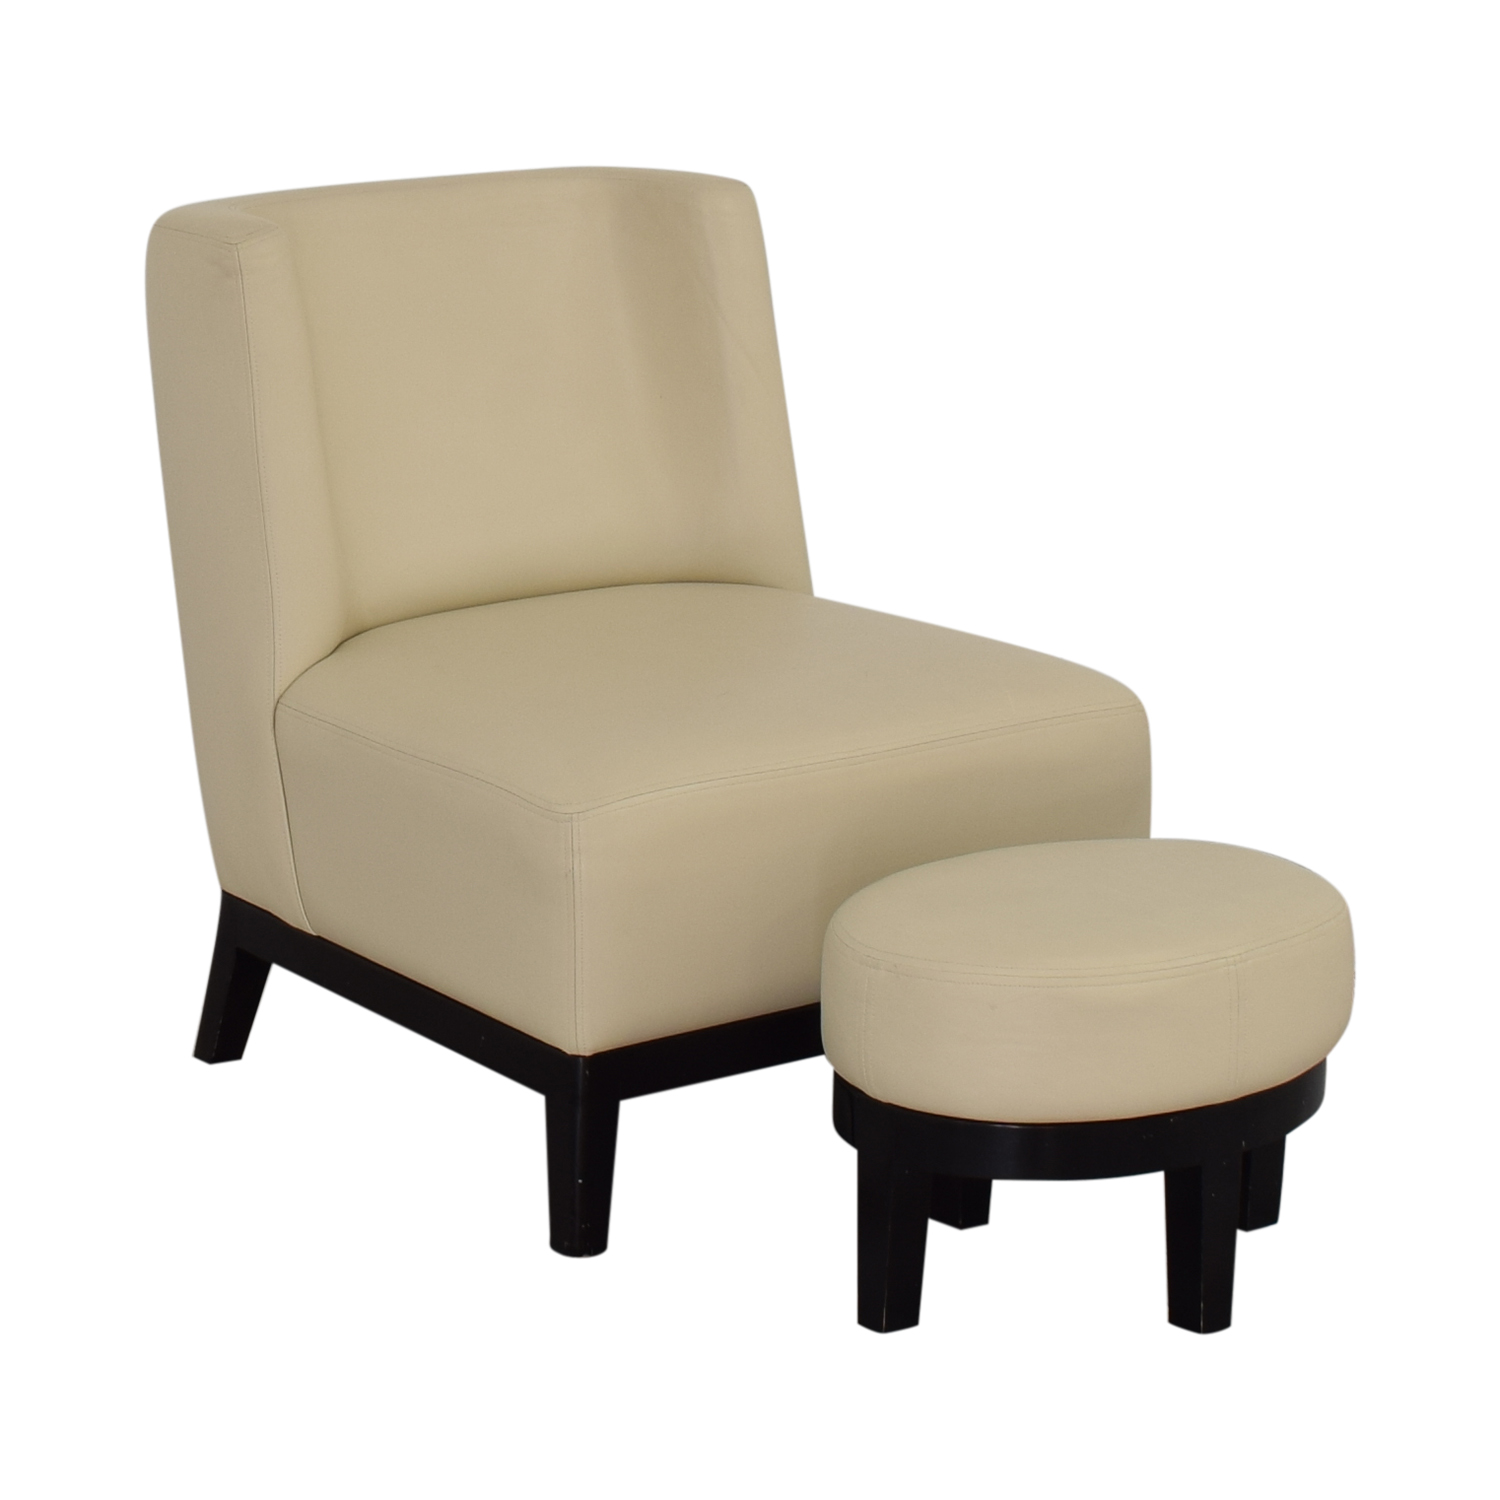 Armless Lounge Chair and Footstool discount